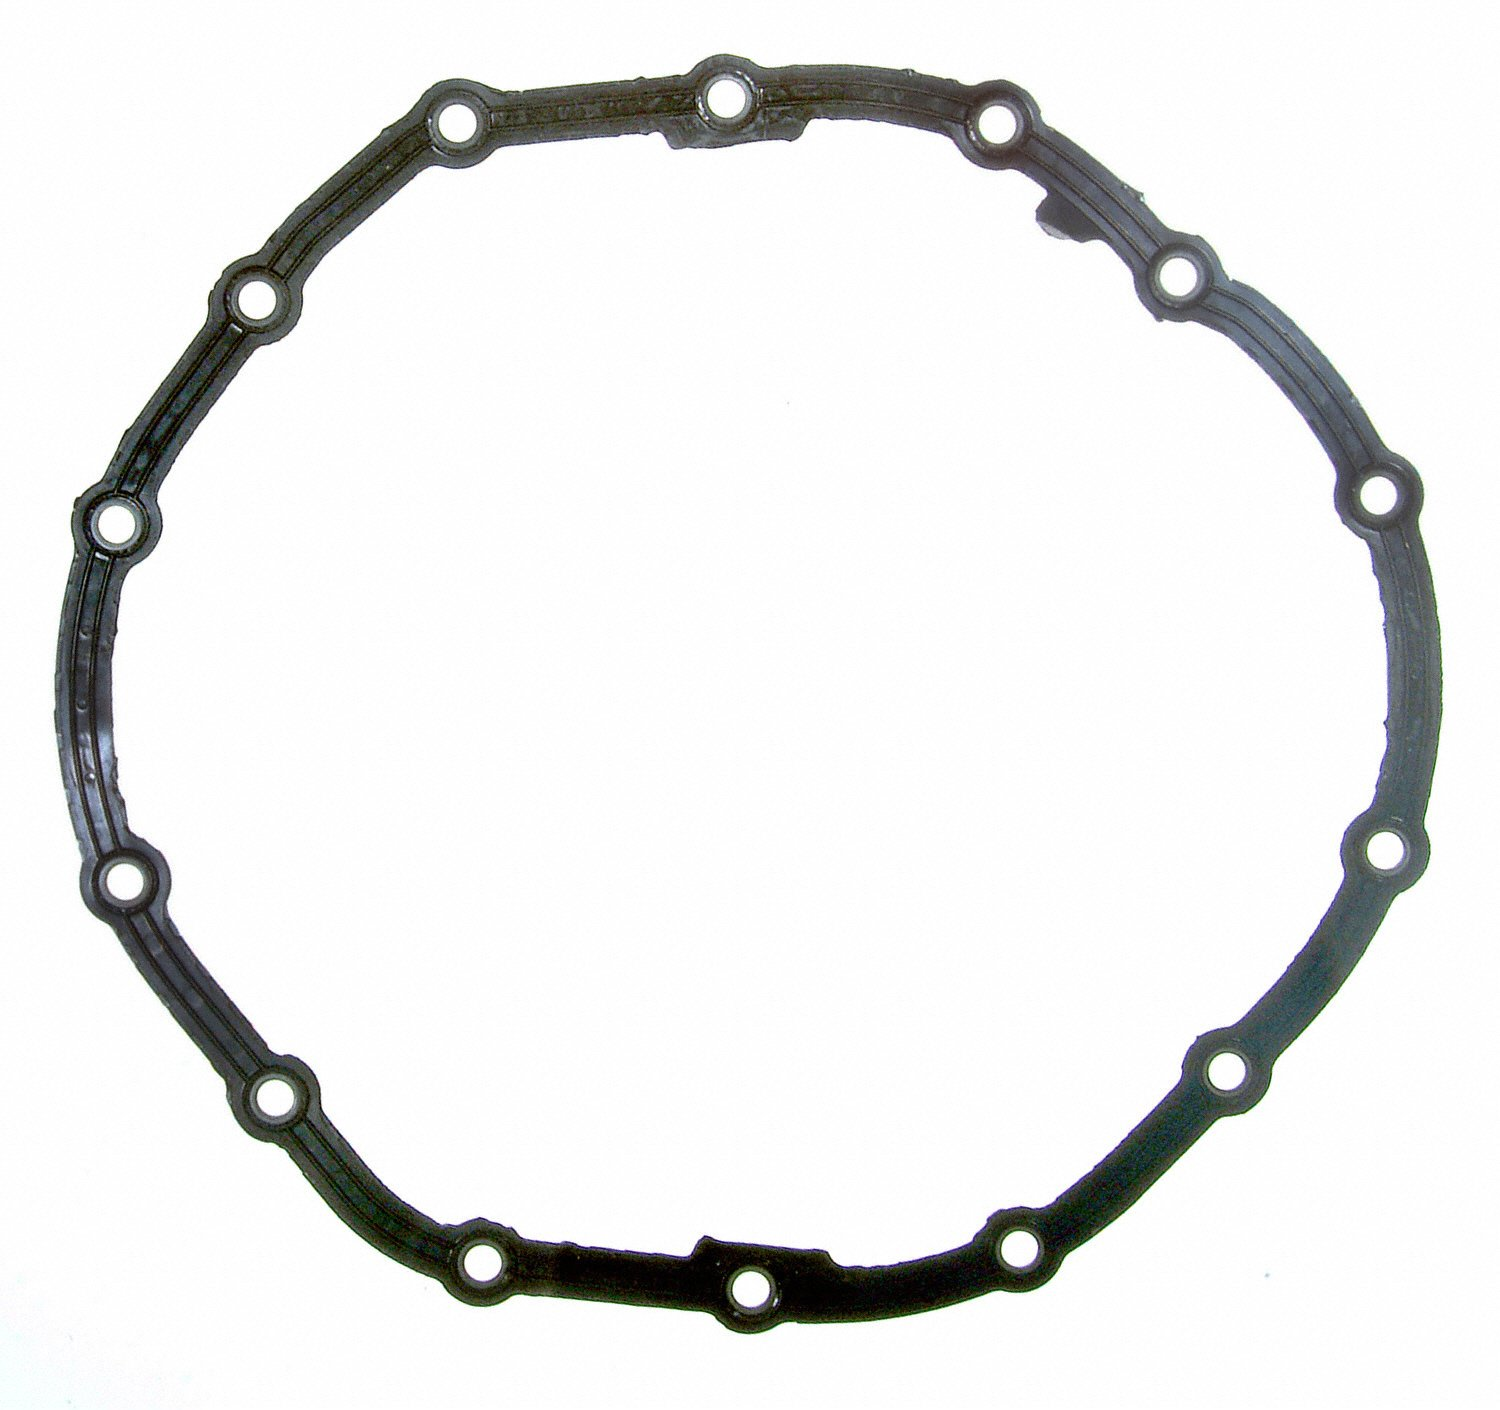 Felpro RDS55474 Axle Housing Cover Gasket for Dodge